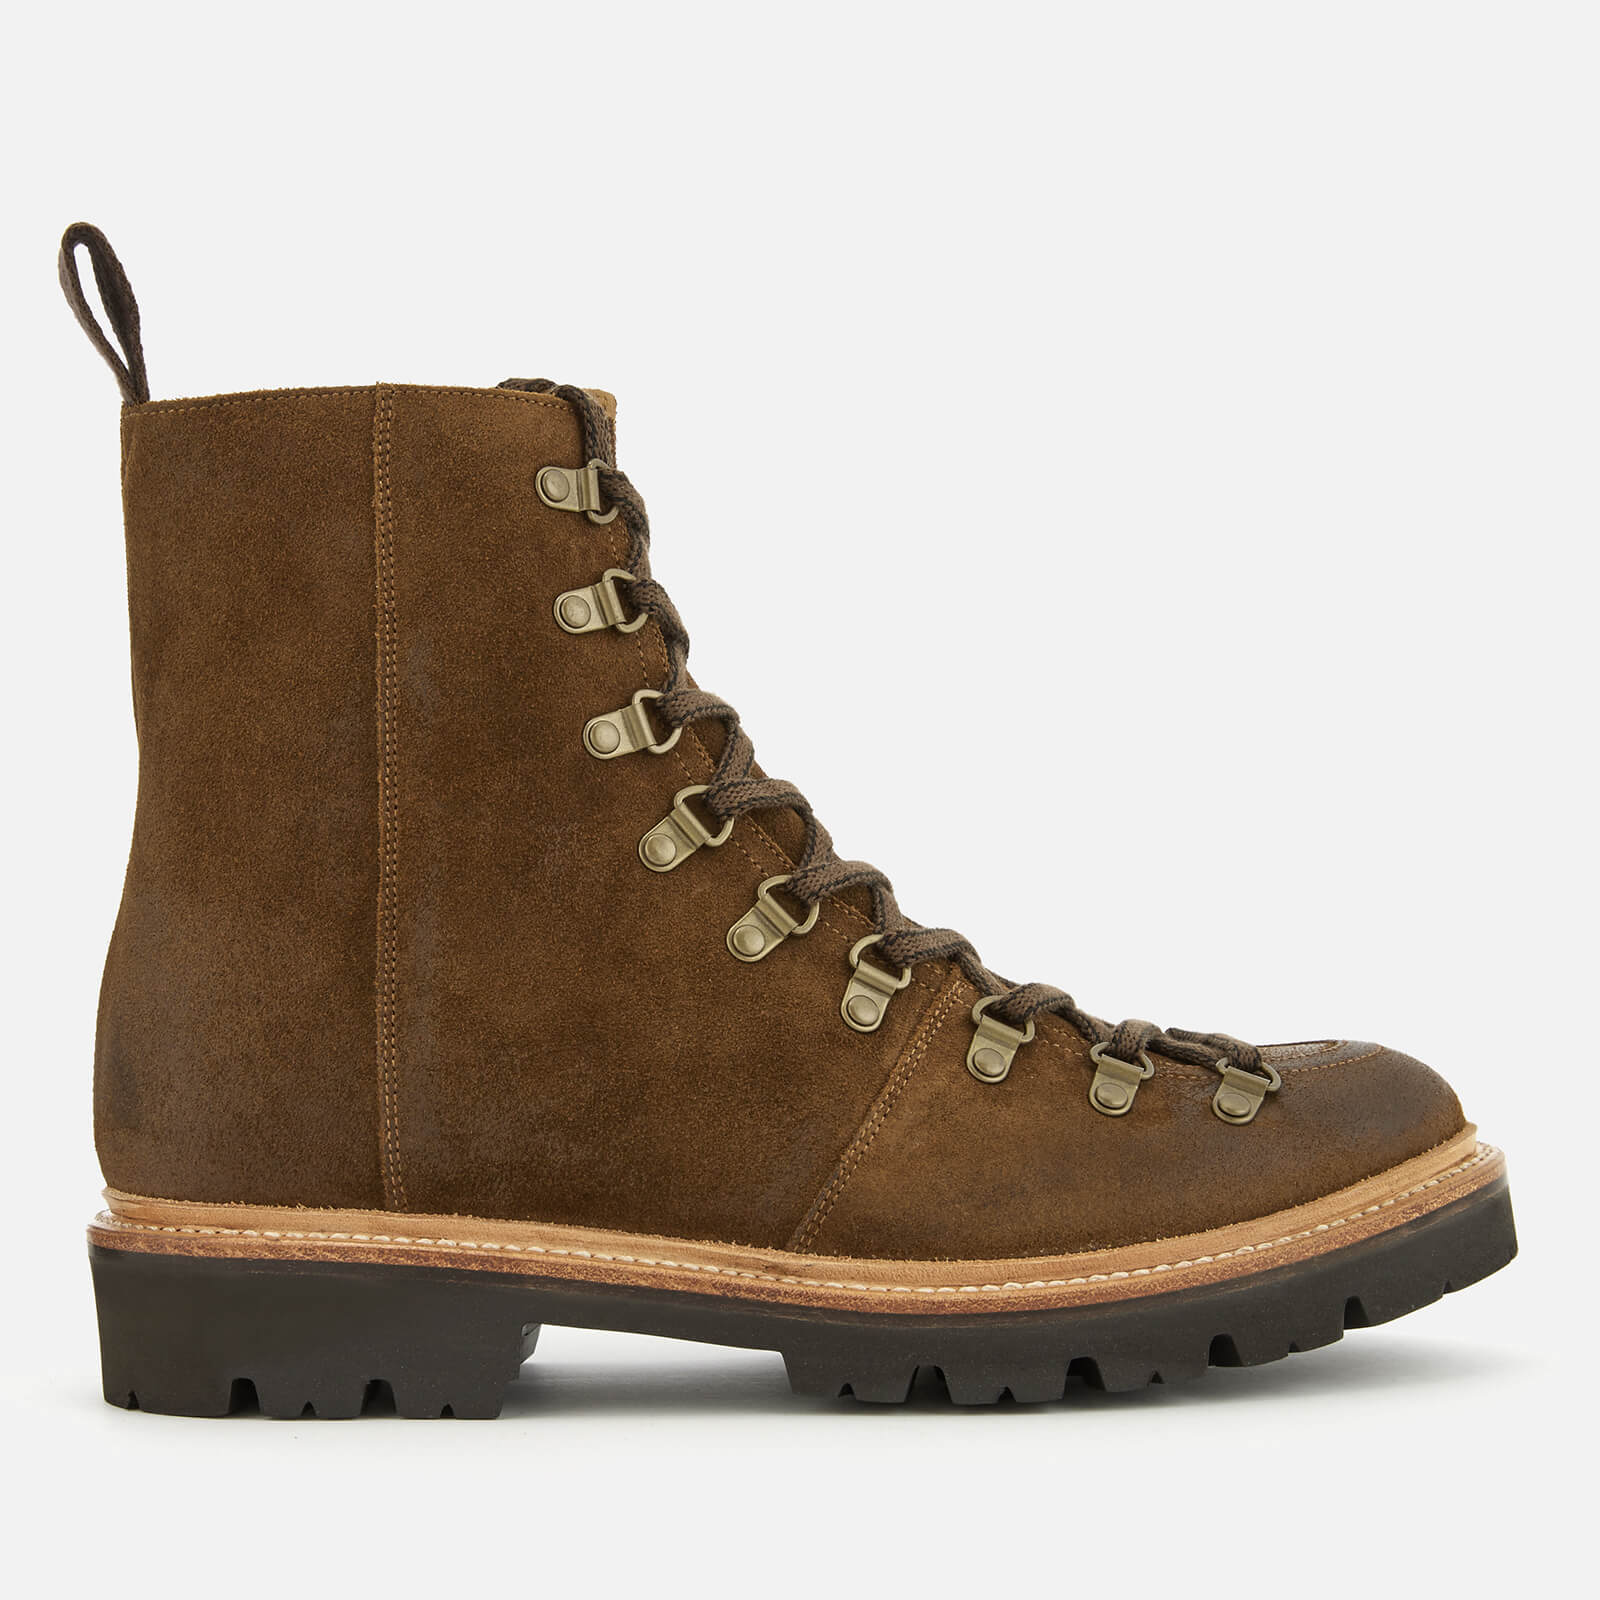 5992cb64291 Grenson Men s Brady Burnished Suede Hiker Lace Up Boots - Snuff ...